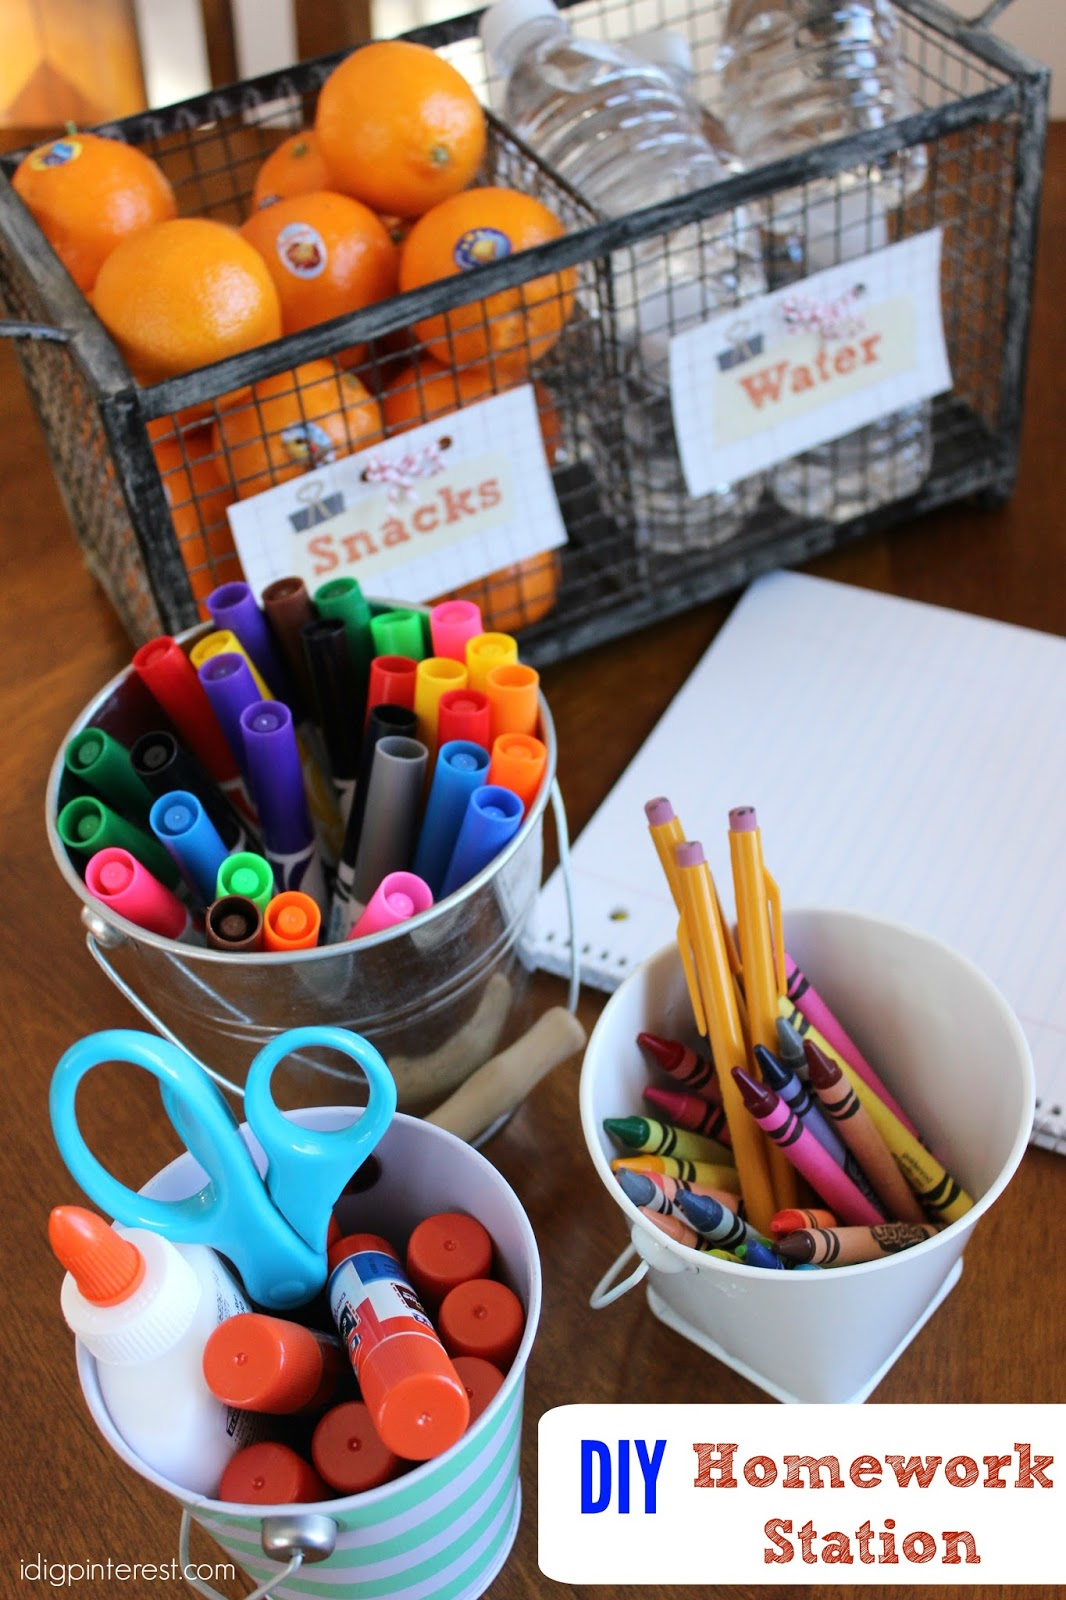 Diy After School Homework And Snack Station I Dig Pinterest